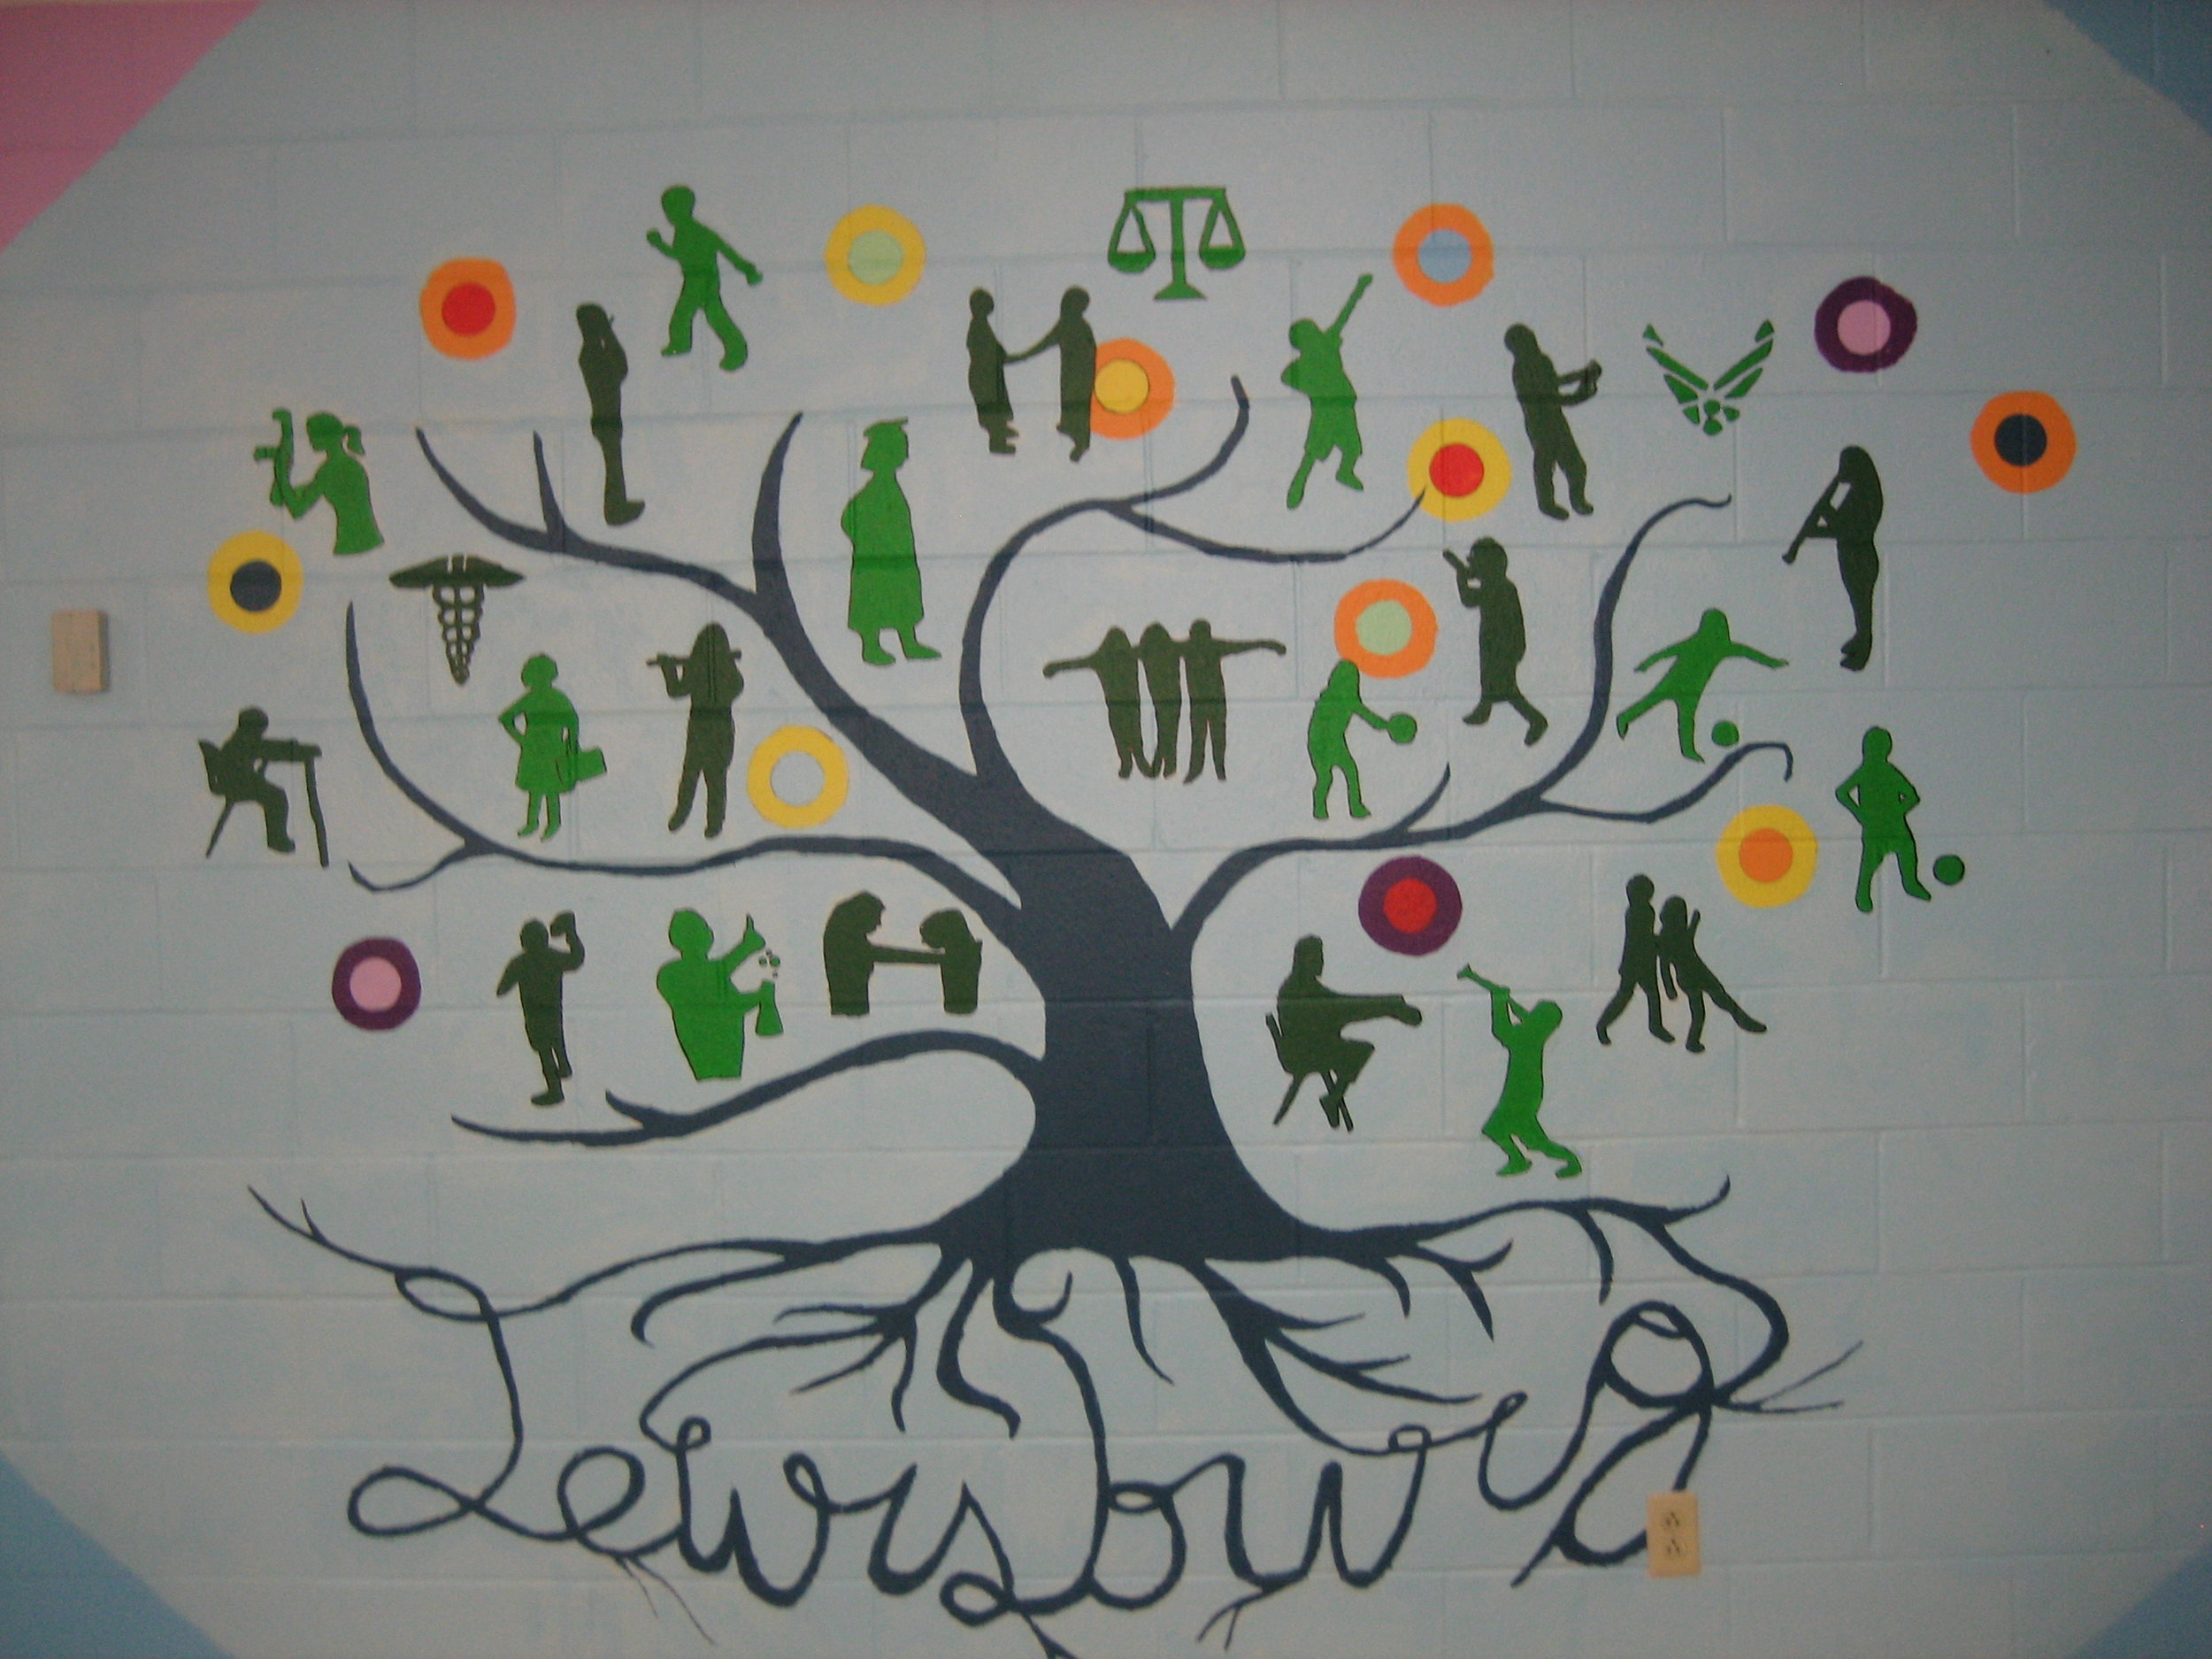 Lewisburg School Mural, with students in grades 3-8